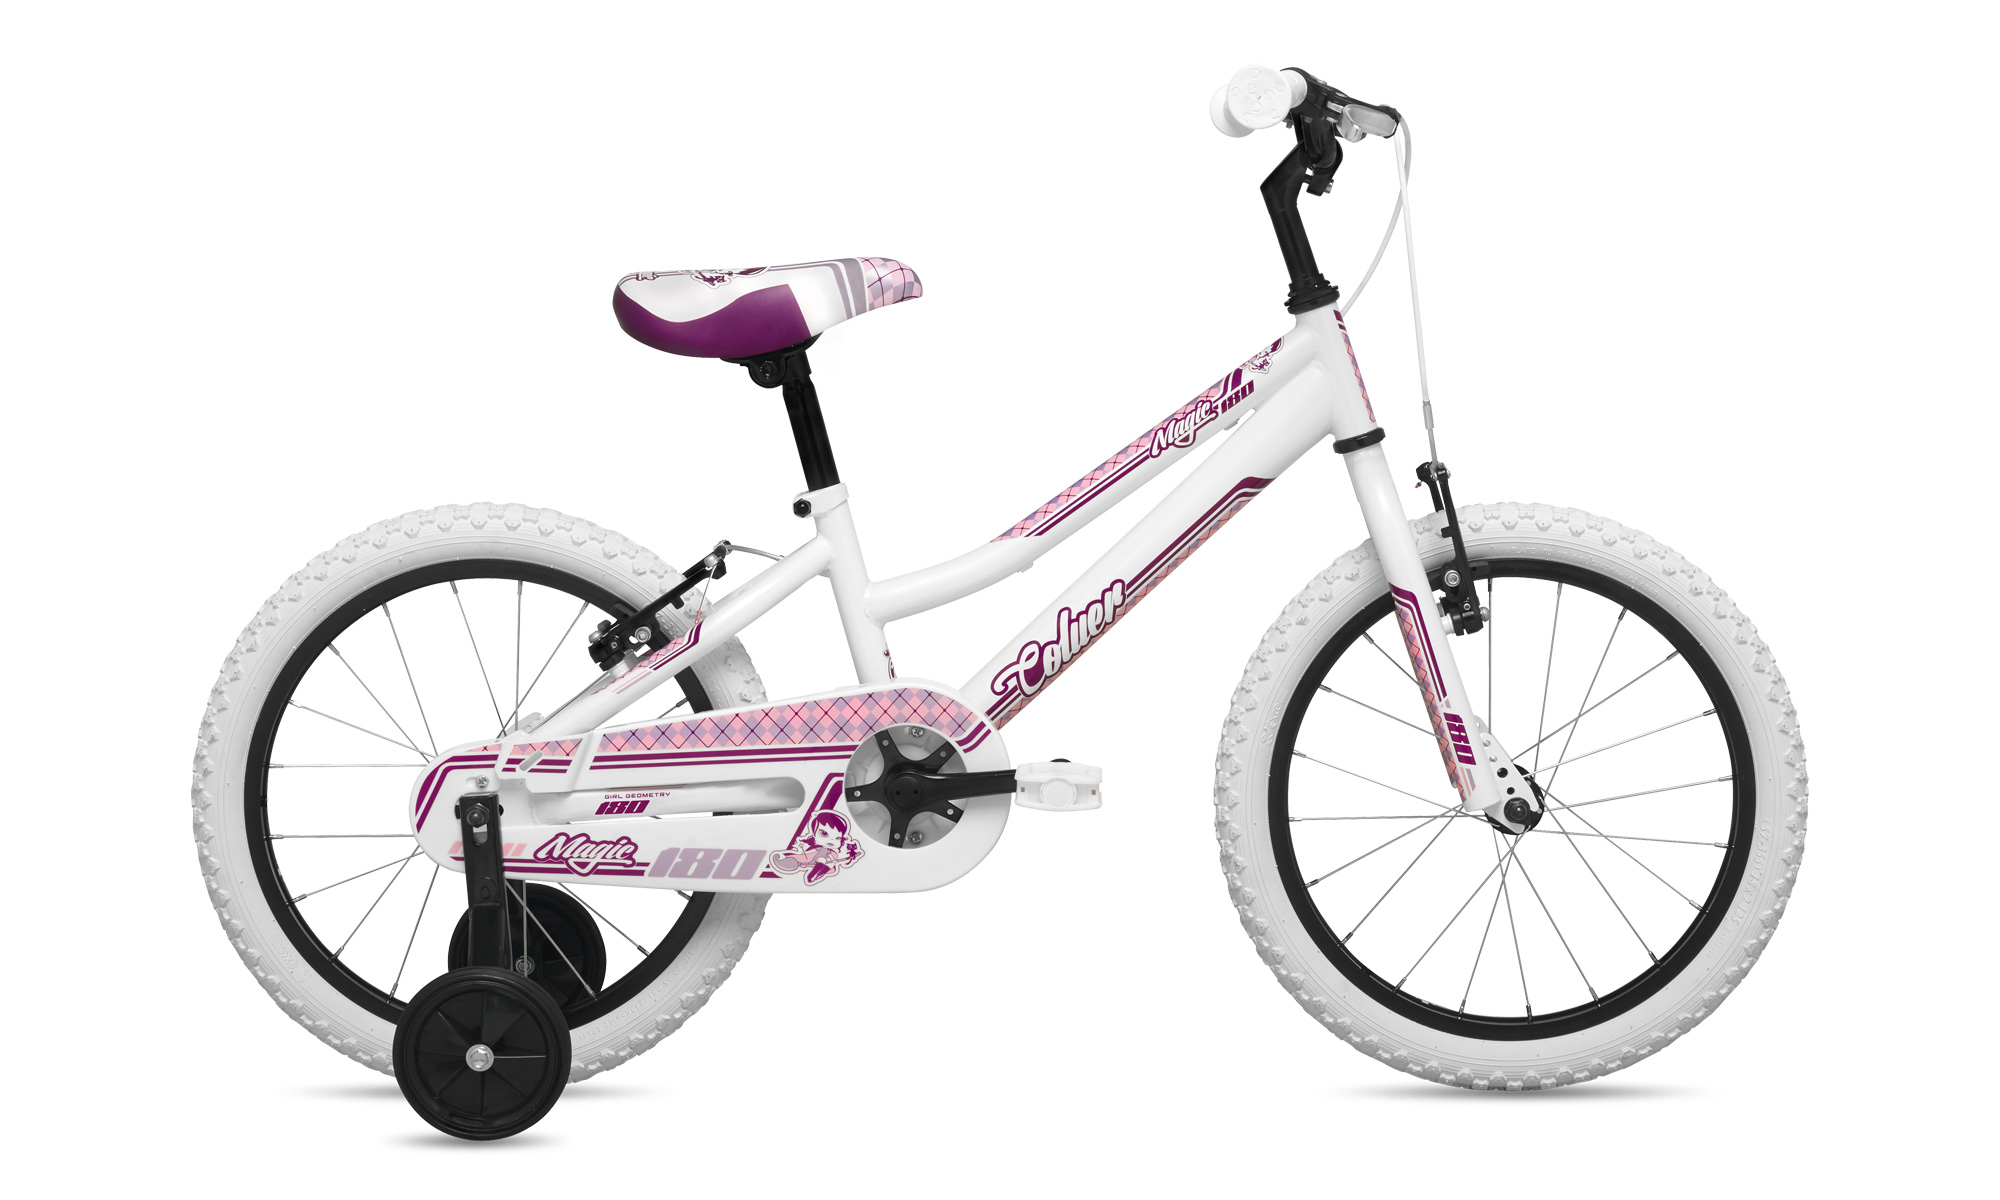 Bicicleta Infantil 18 Coluer Magic 180 | Ciclomania